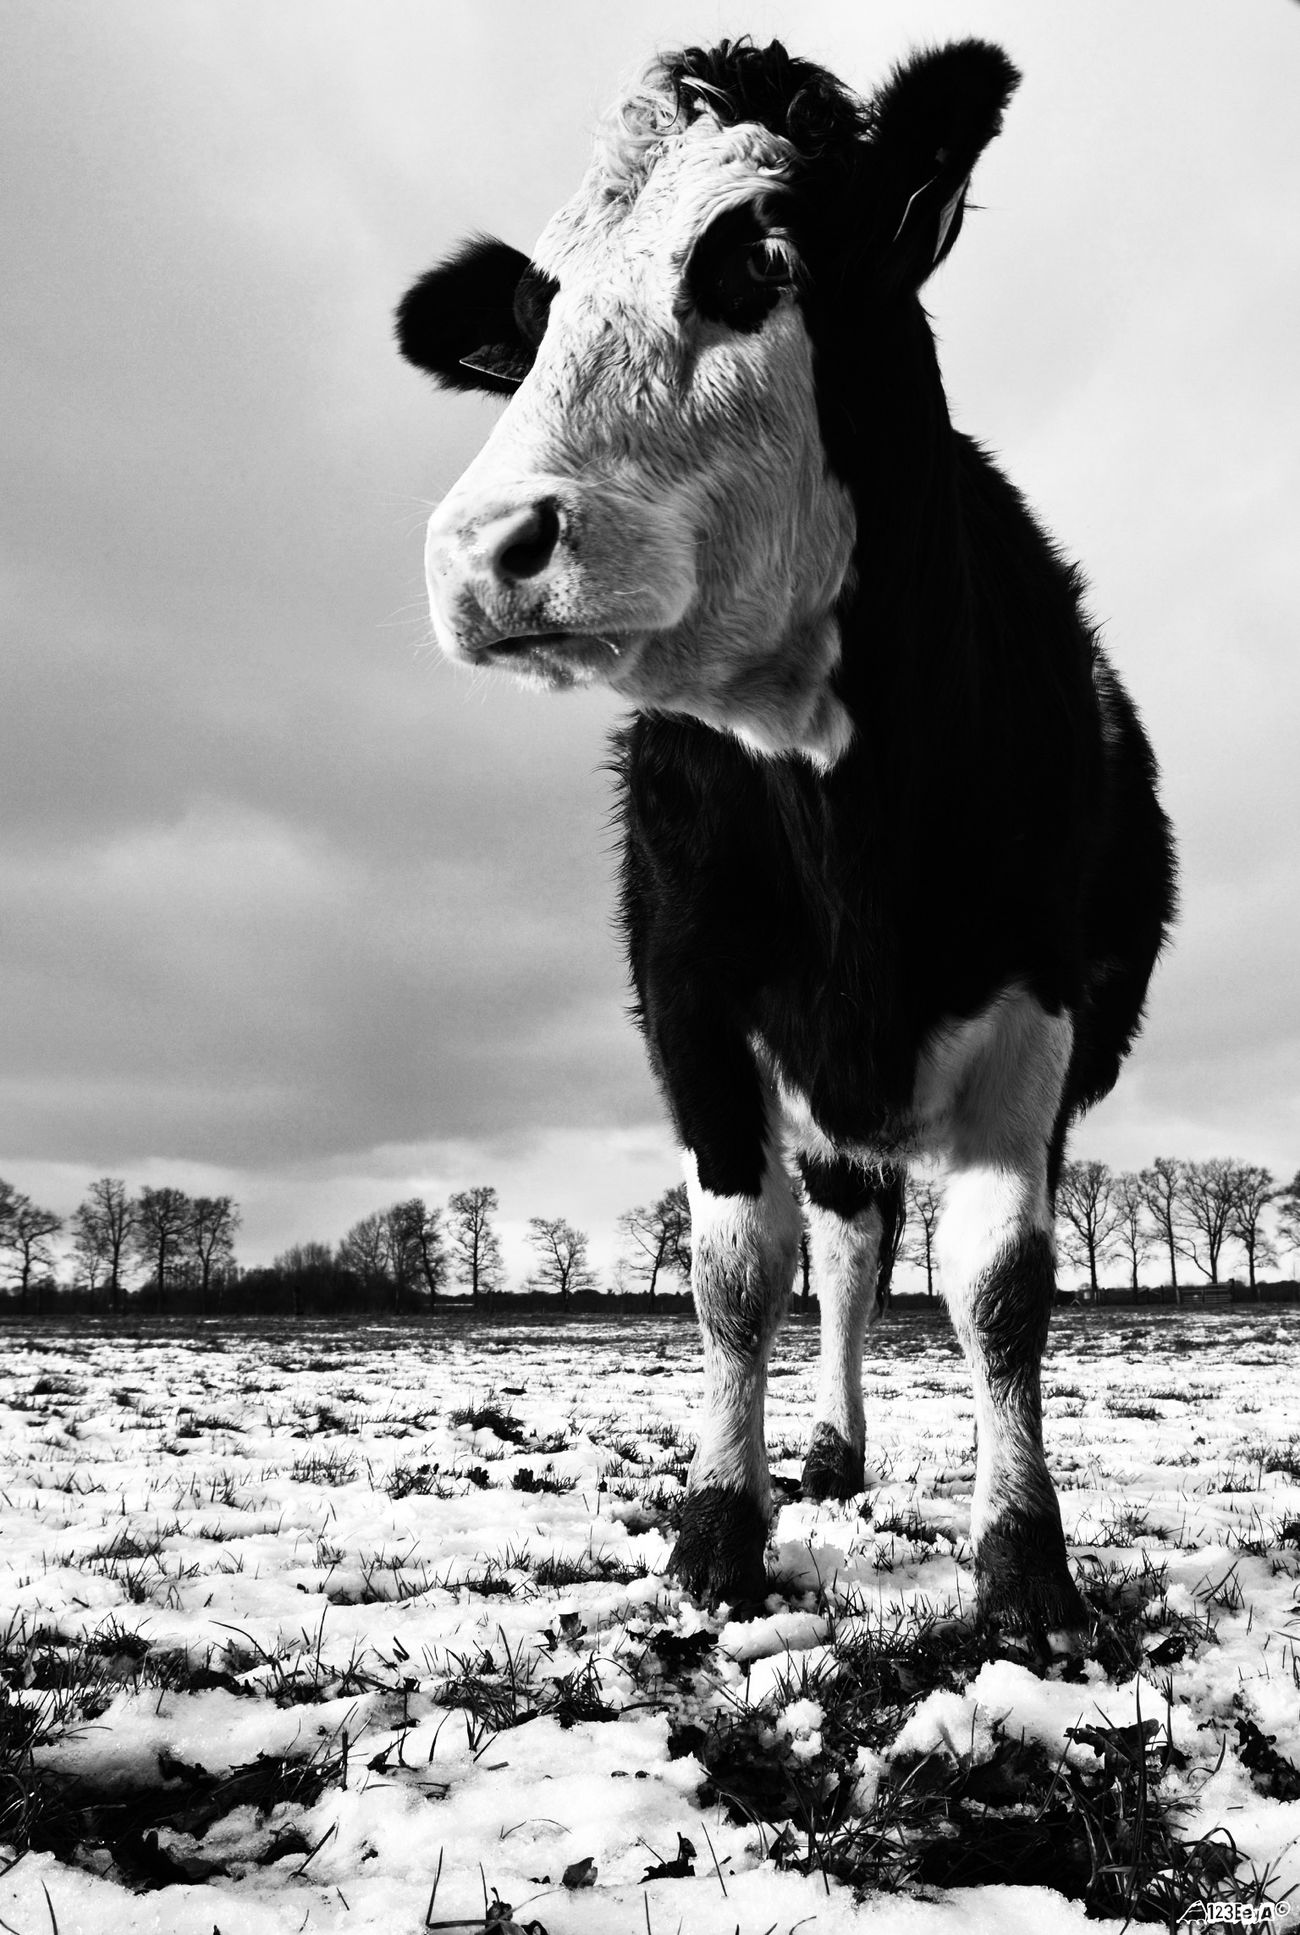 As Cow today in Snowy Driebergenrijssenburg very Dutch Landscape